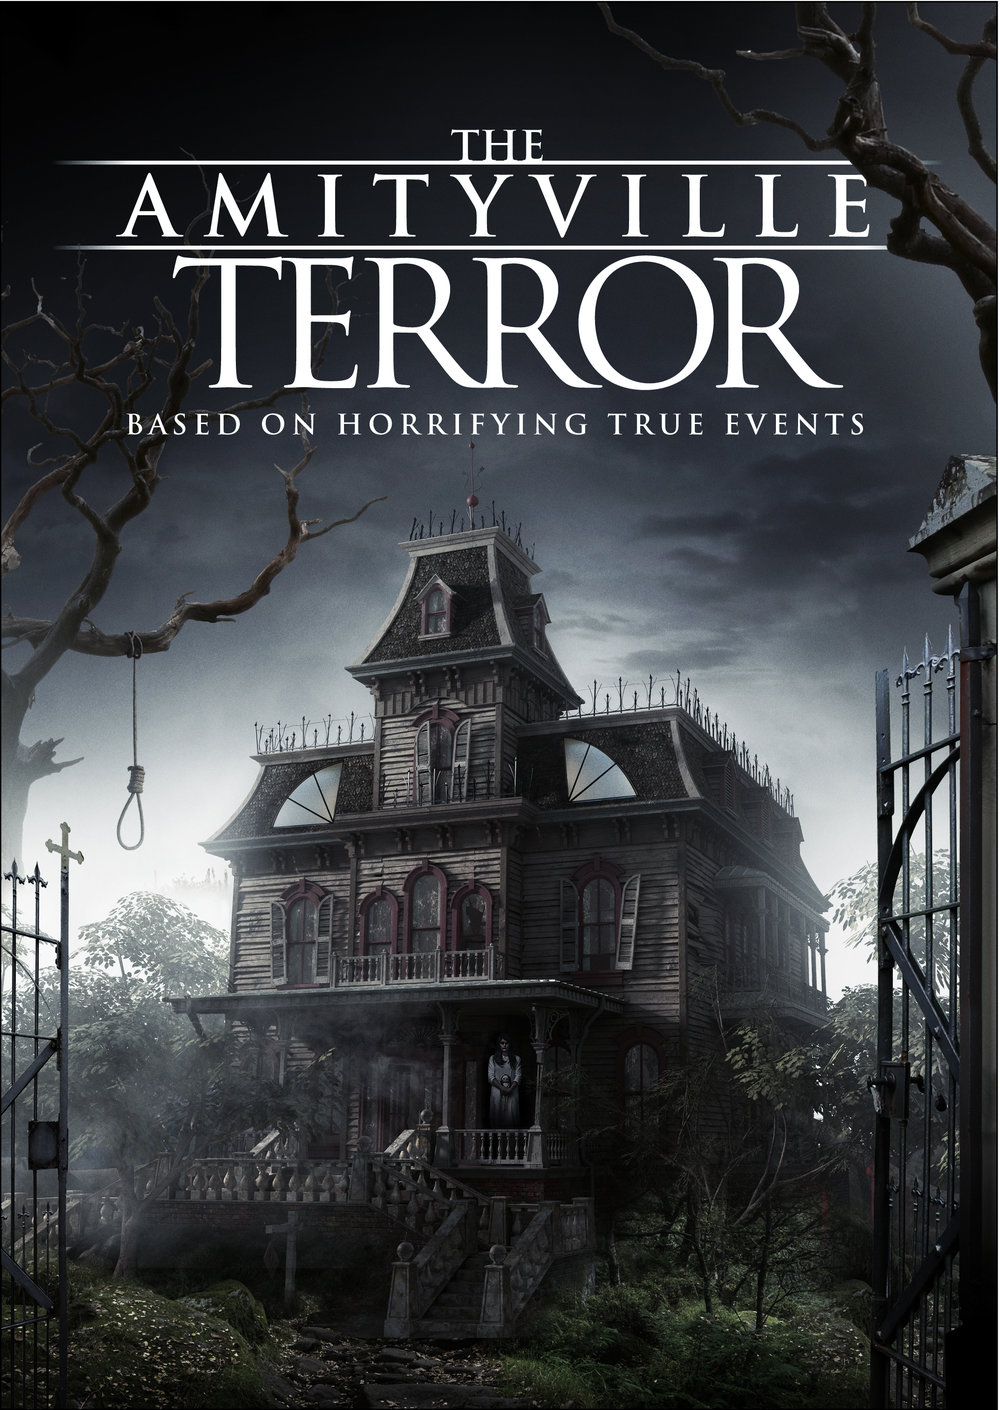 Amityville Terror Artwork FINAL.jpg